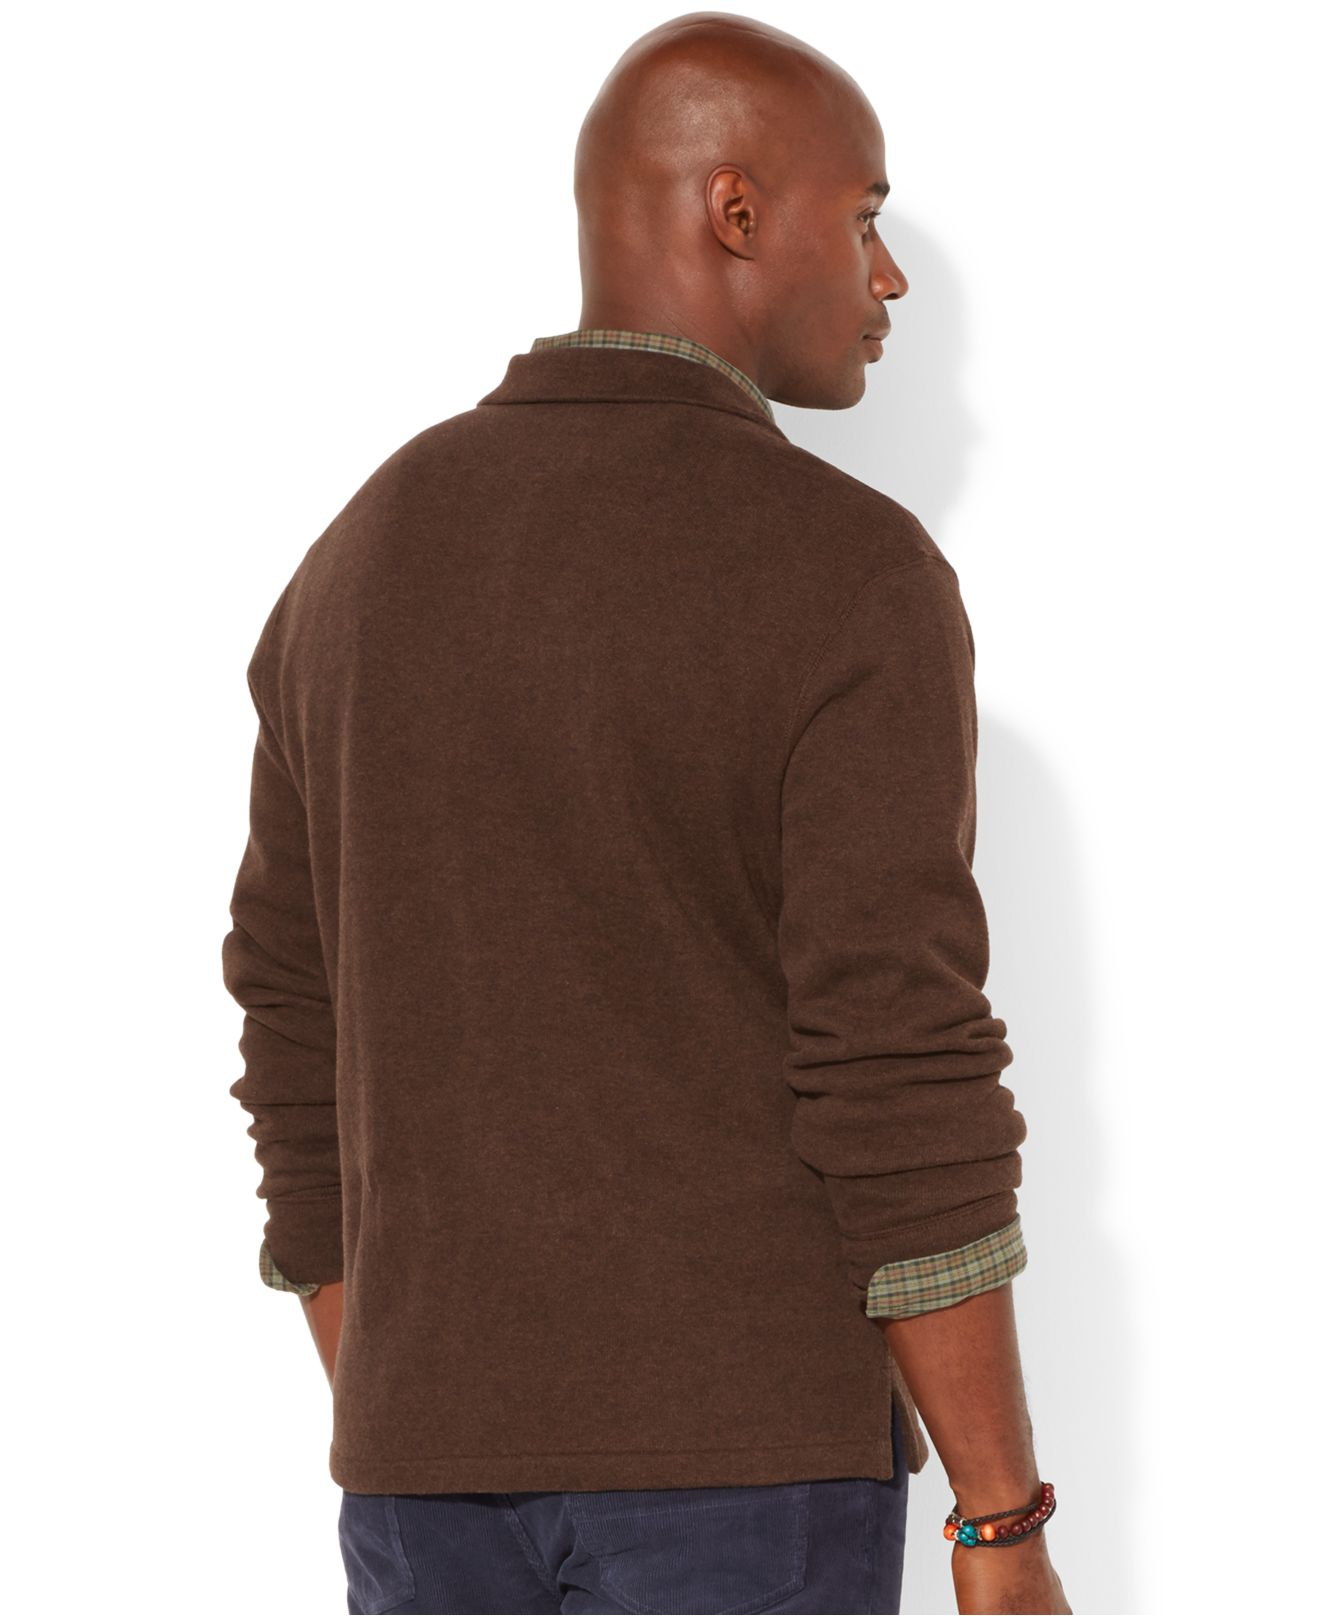 lyst polo ralph lauren big and tall half zip french rib sweater in brown for men. Black Bedroom Furniture Sets. Home Design Ideas